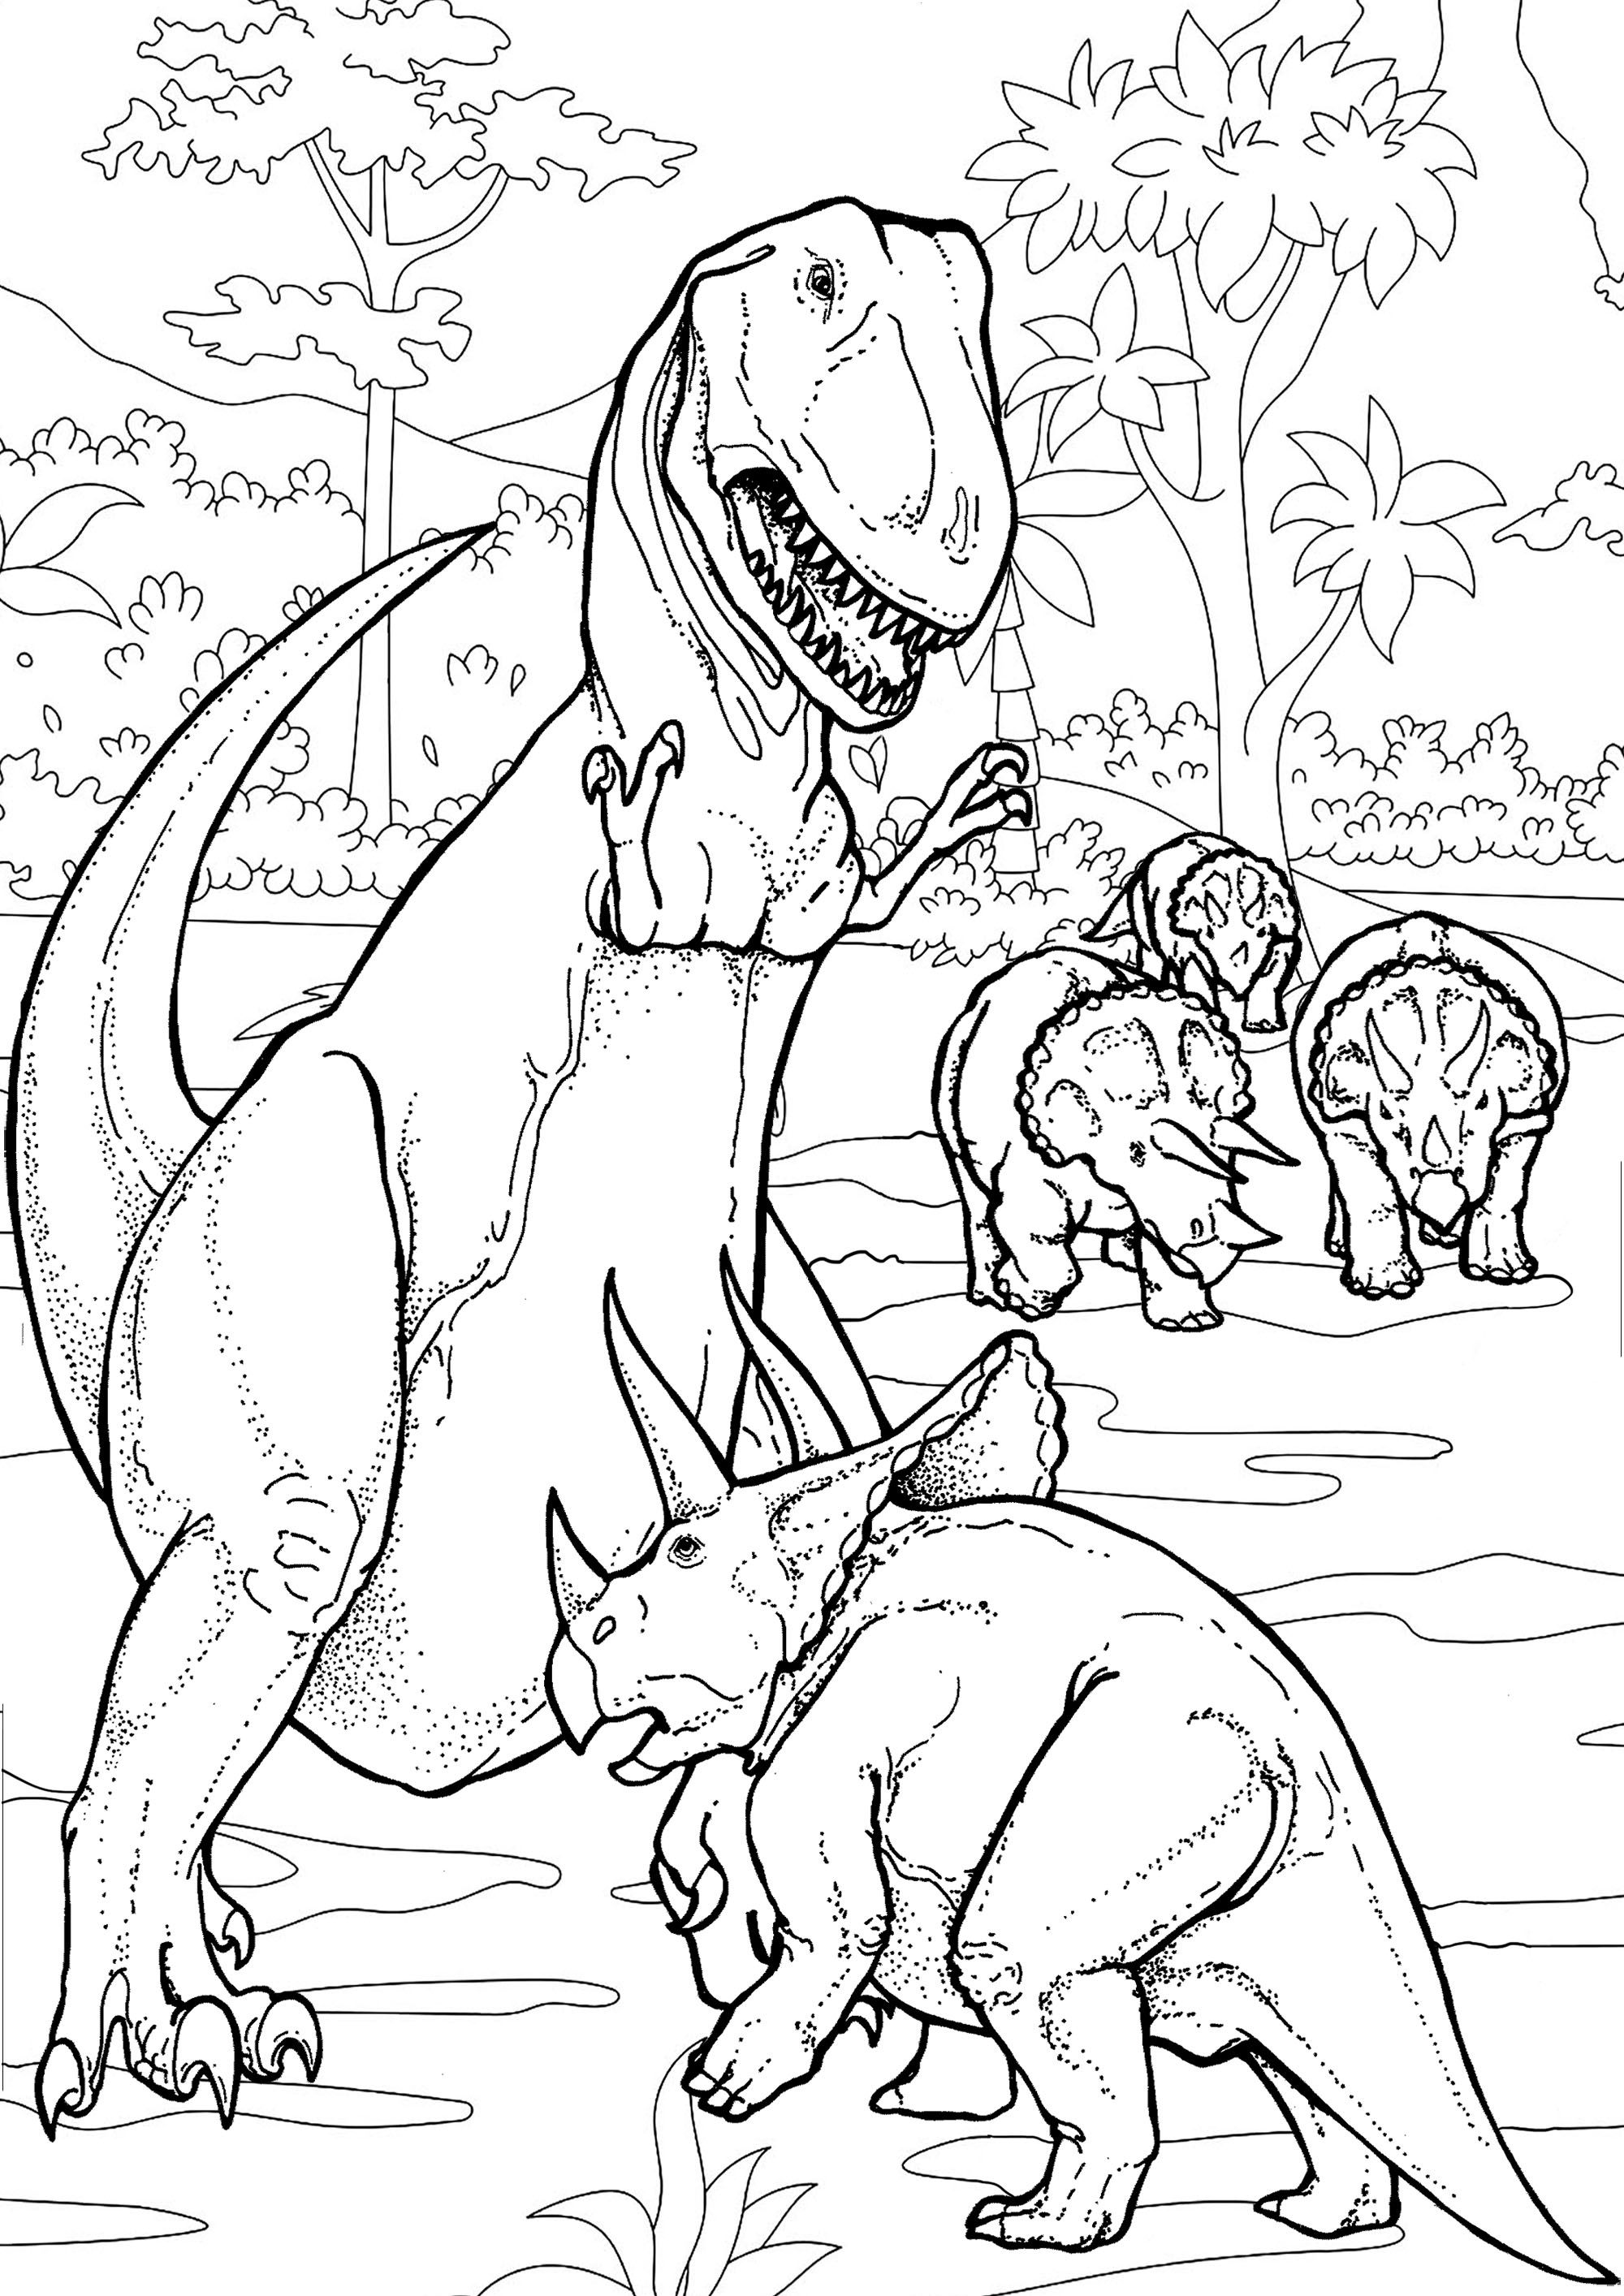 Color This Dinosaurs Fighting Battle From The Gallery Dinosaurs In 2021 Dinosaur Coloring Pages Dinosaur Coloring Sheets Dinosaur Coloring